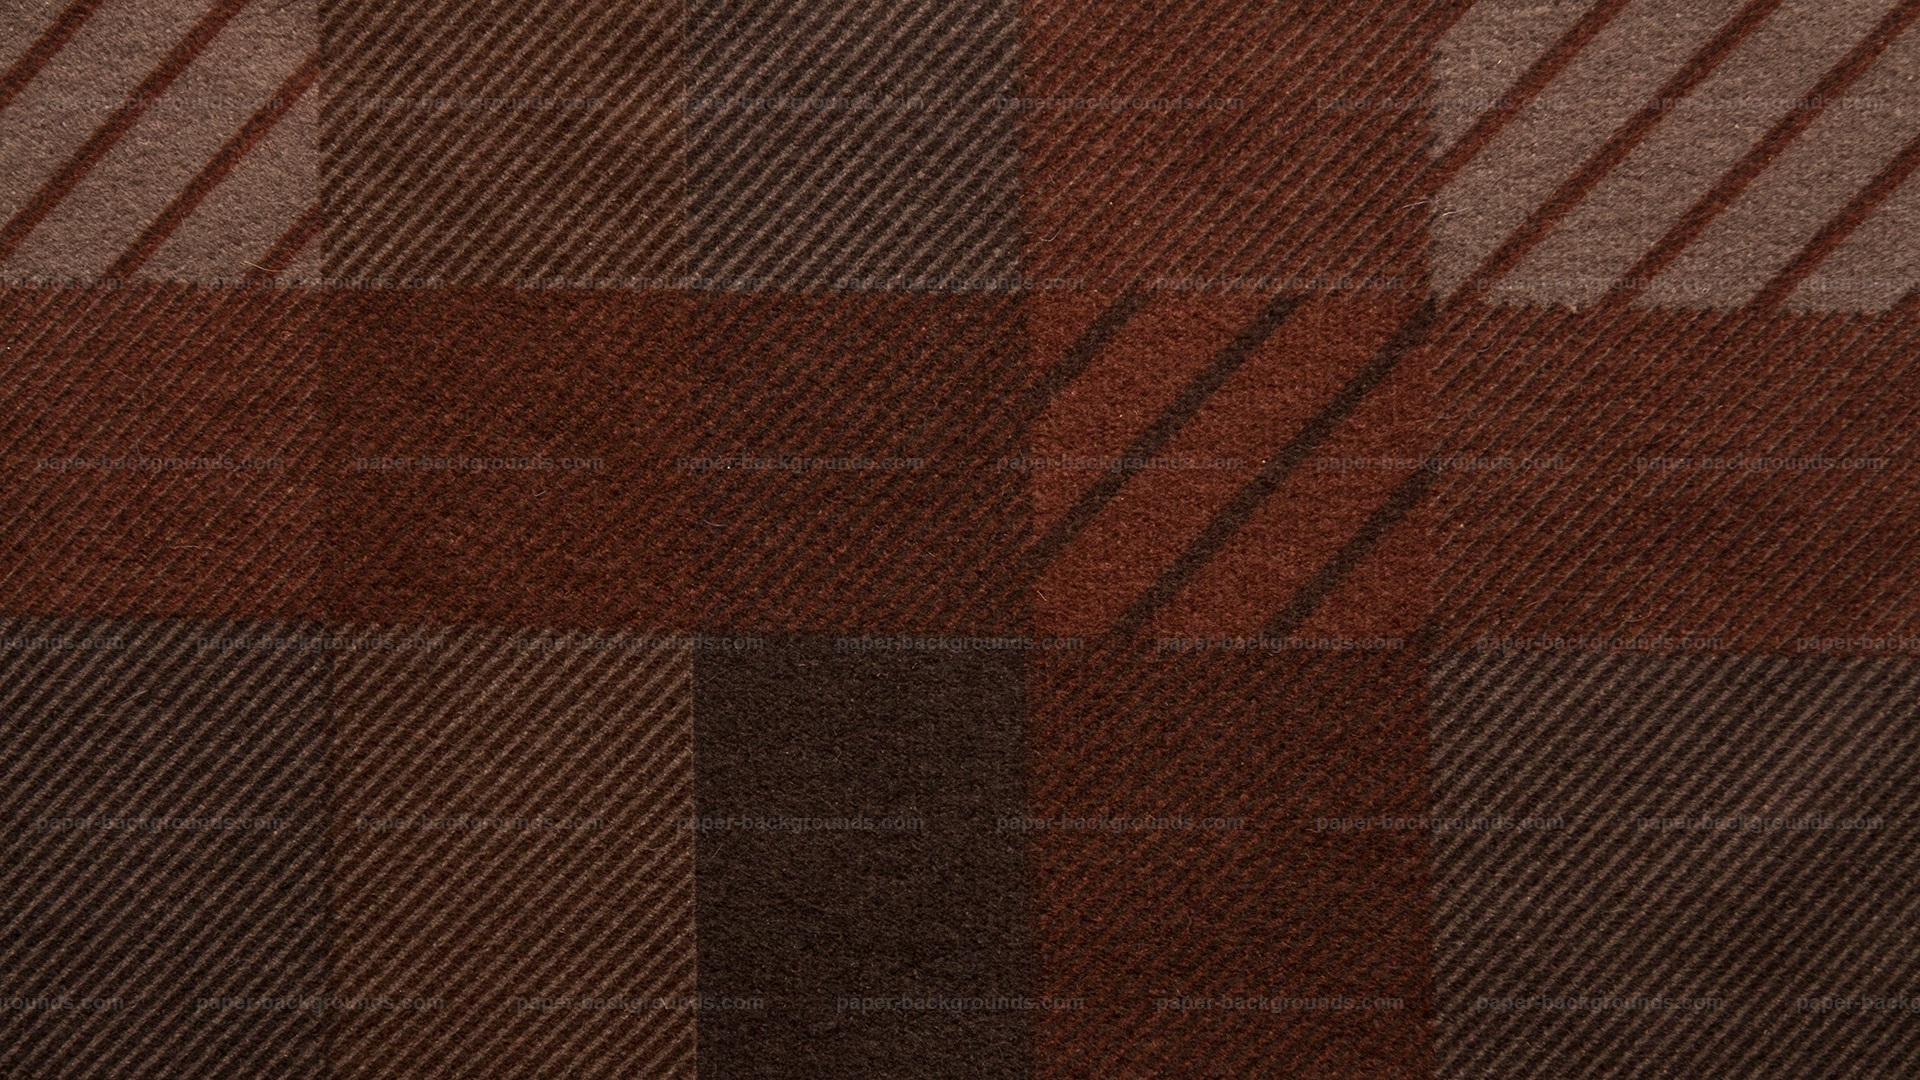 Dark Brown Plaid Fabric Texture HD